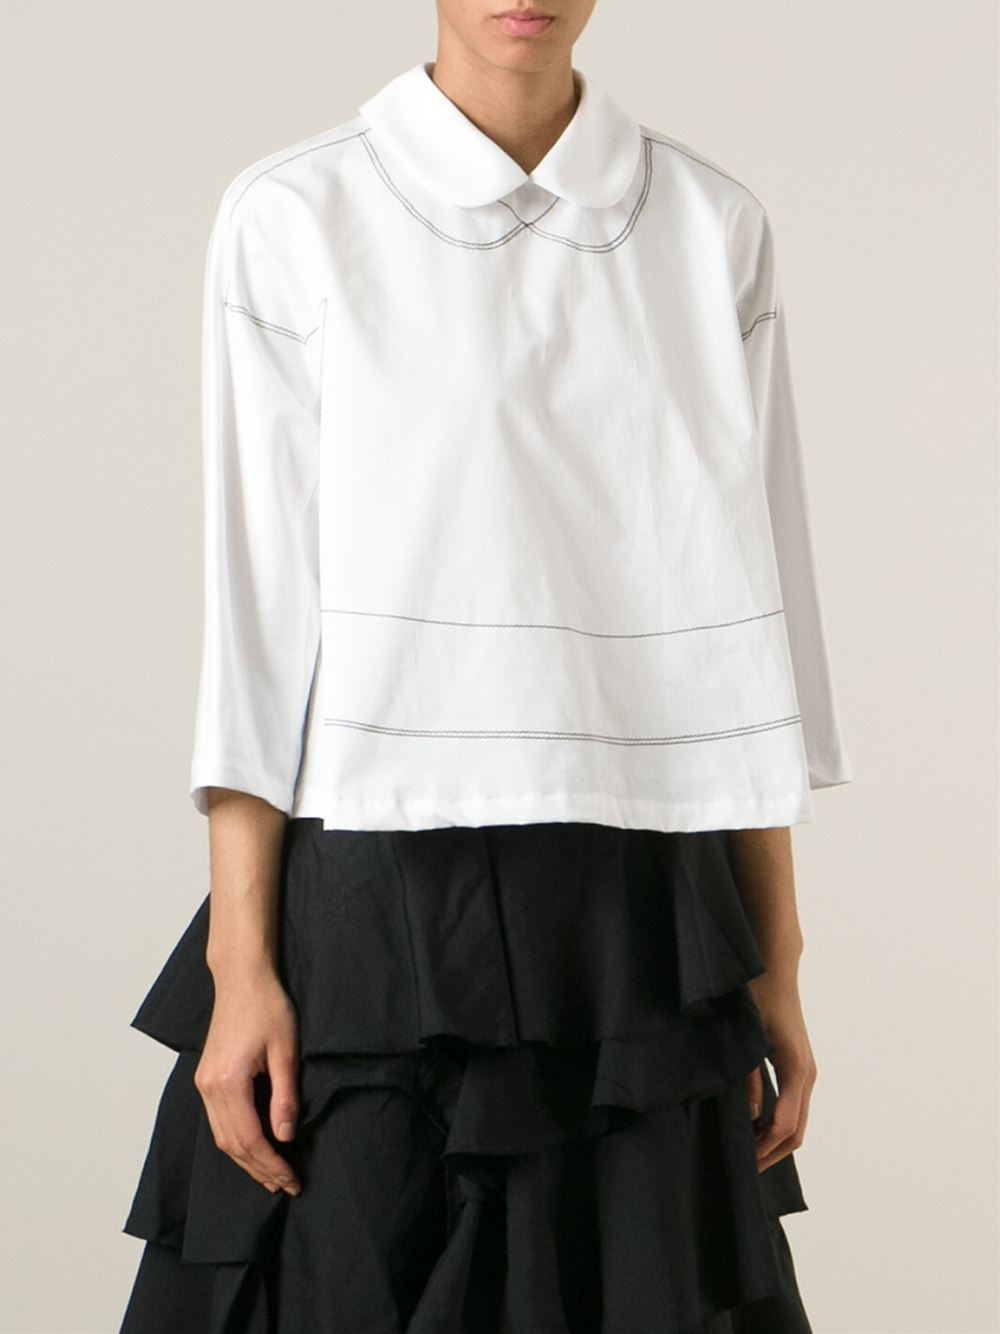 Lyst Comme Des Garcons Peter Pan Collar Shirt In White